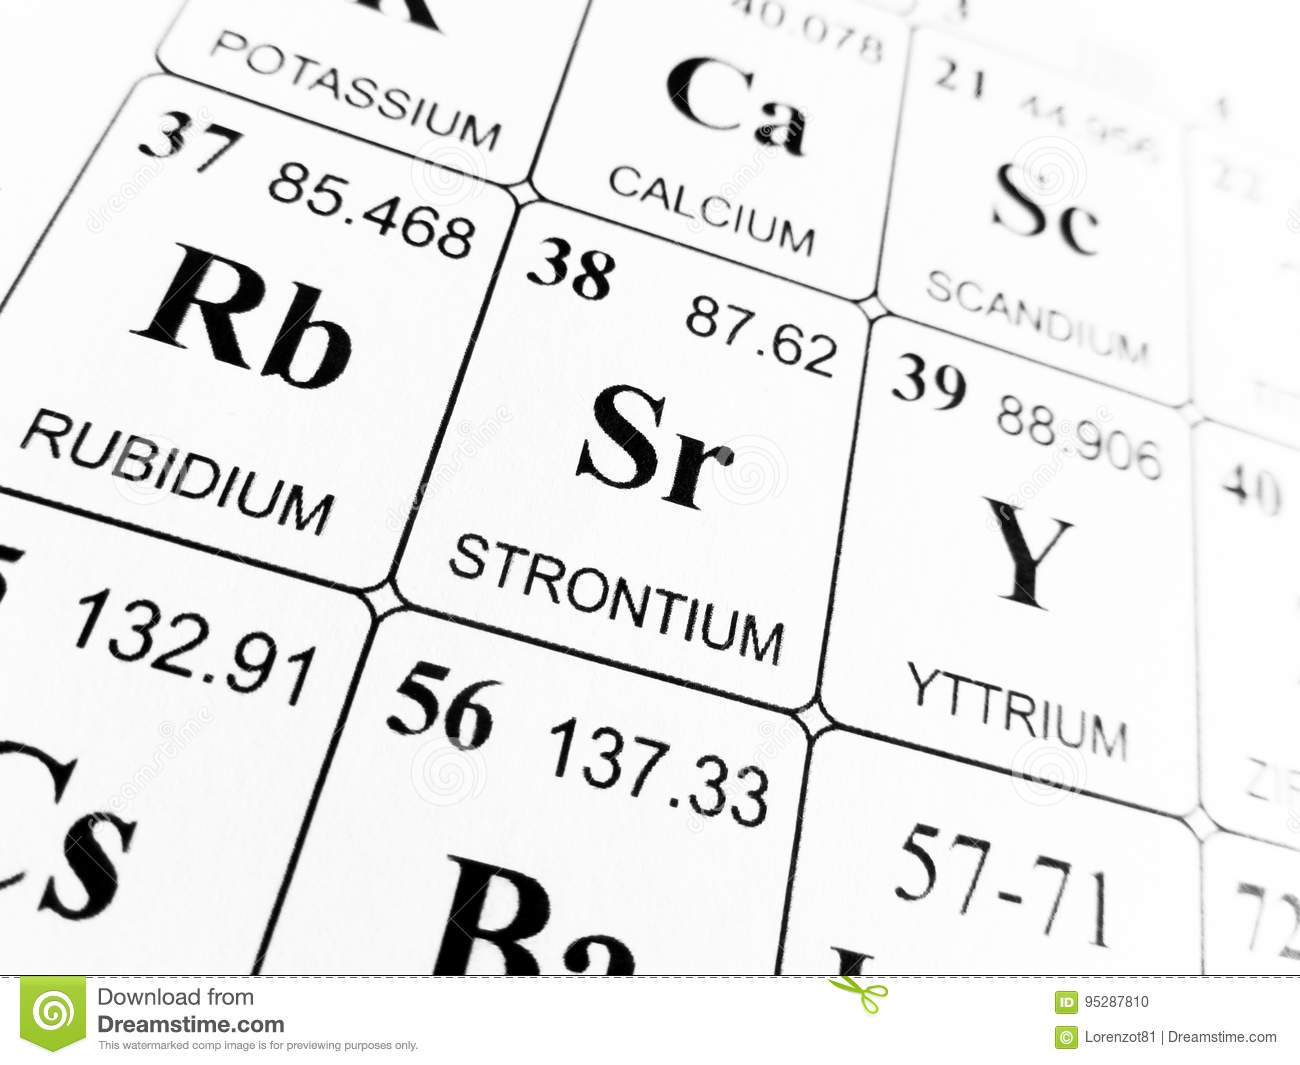 Element 85 periodic table choice image periodic table images periodic table element y images periodic table images periodic table element y images periodic table images gamestrikefo Gallery